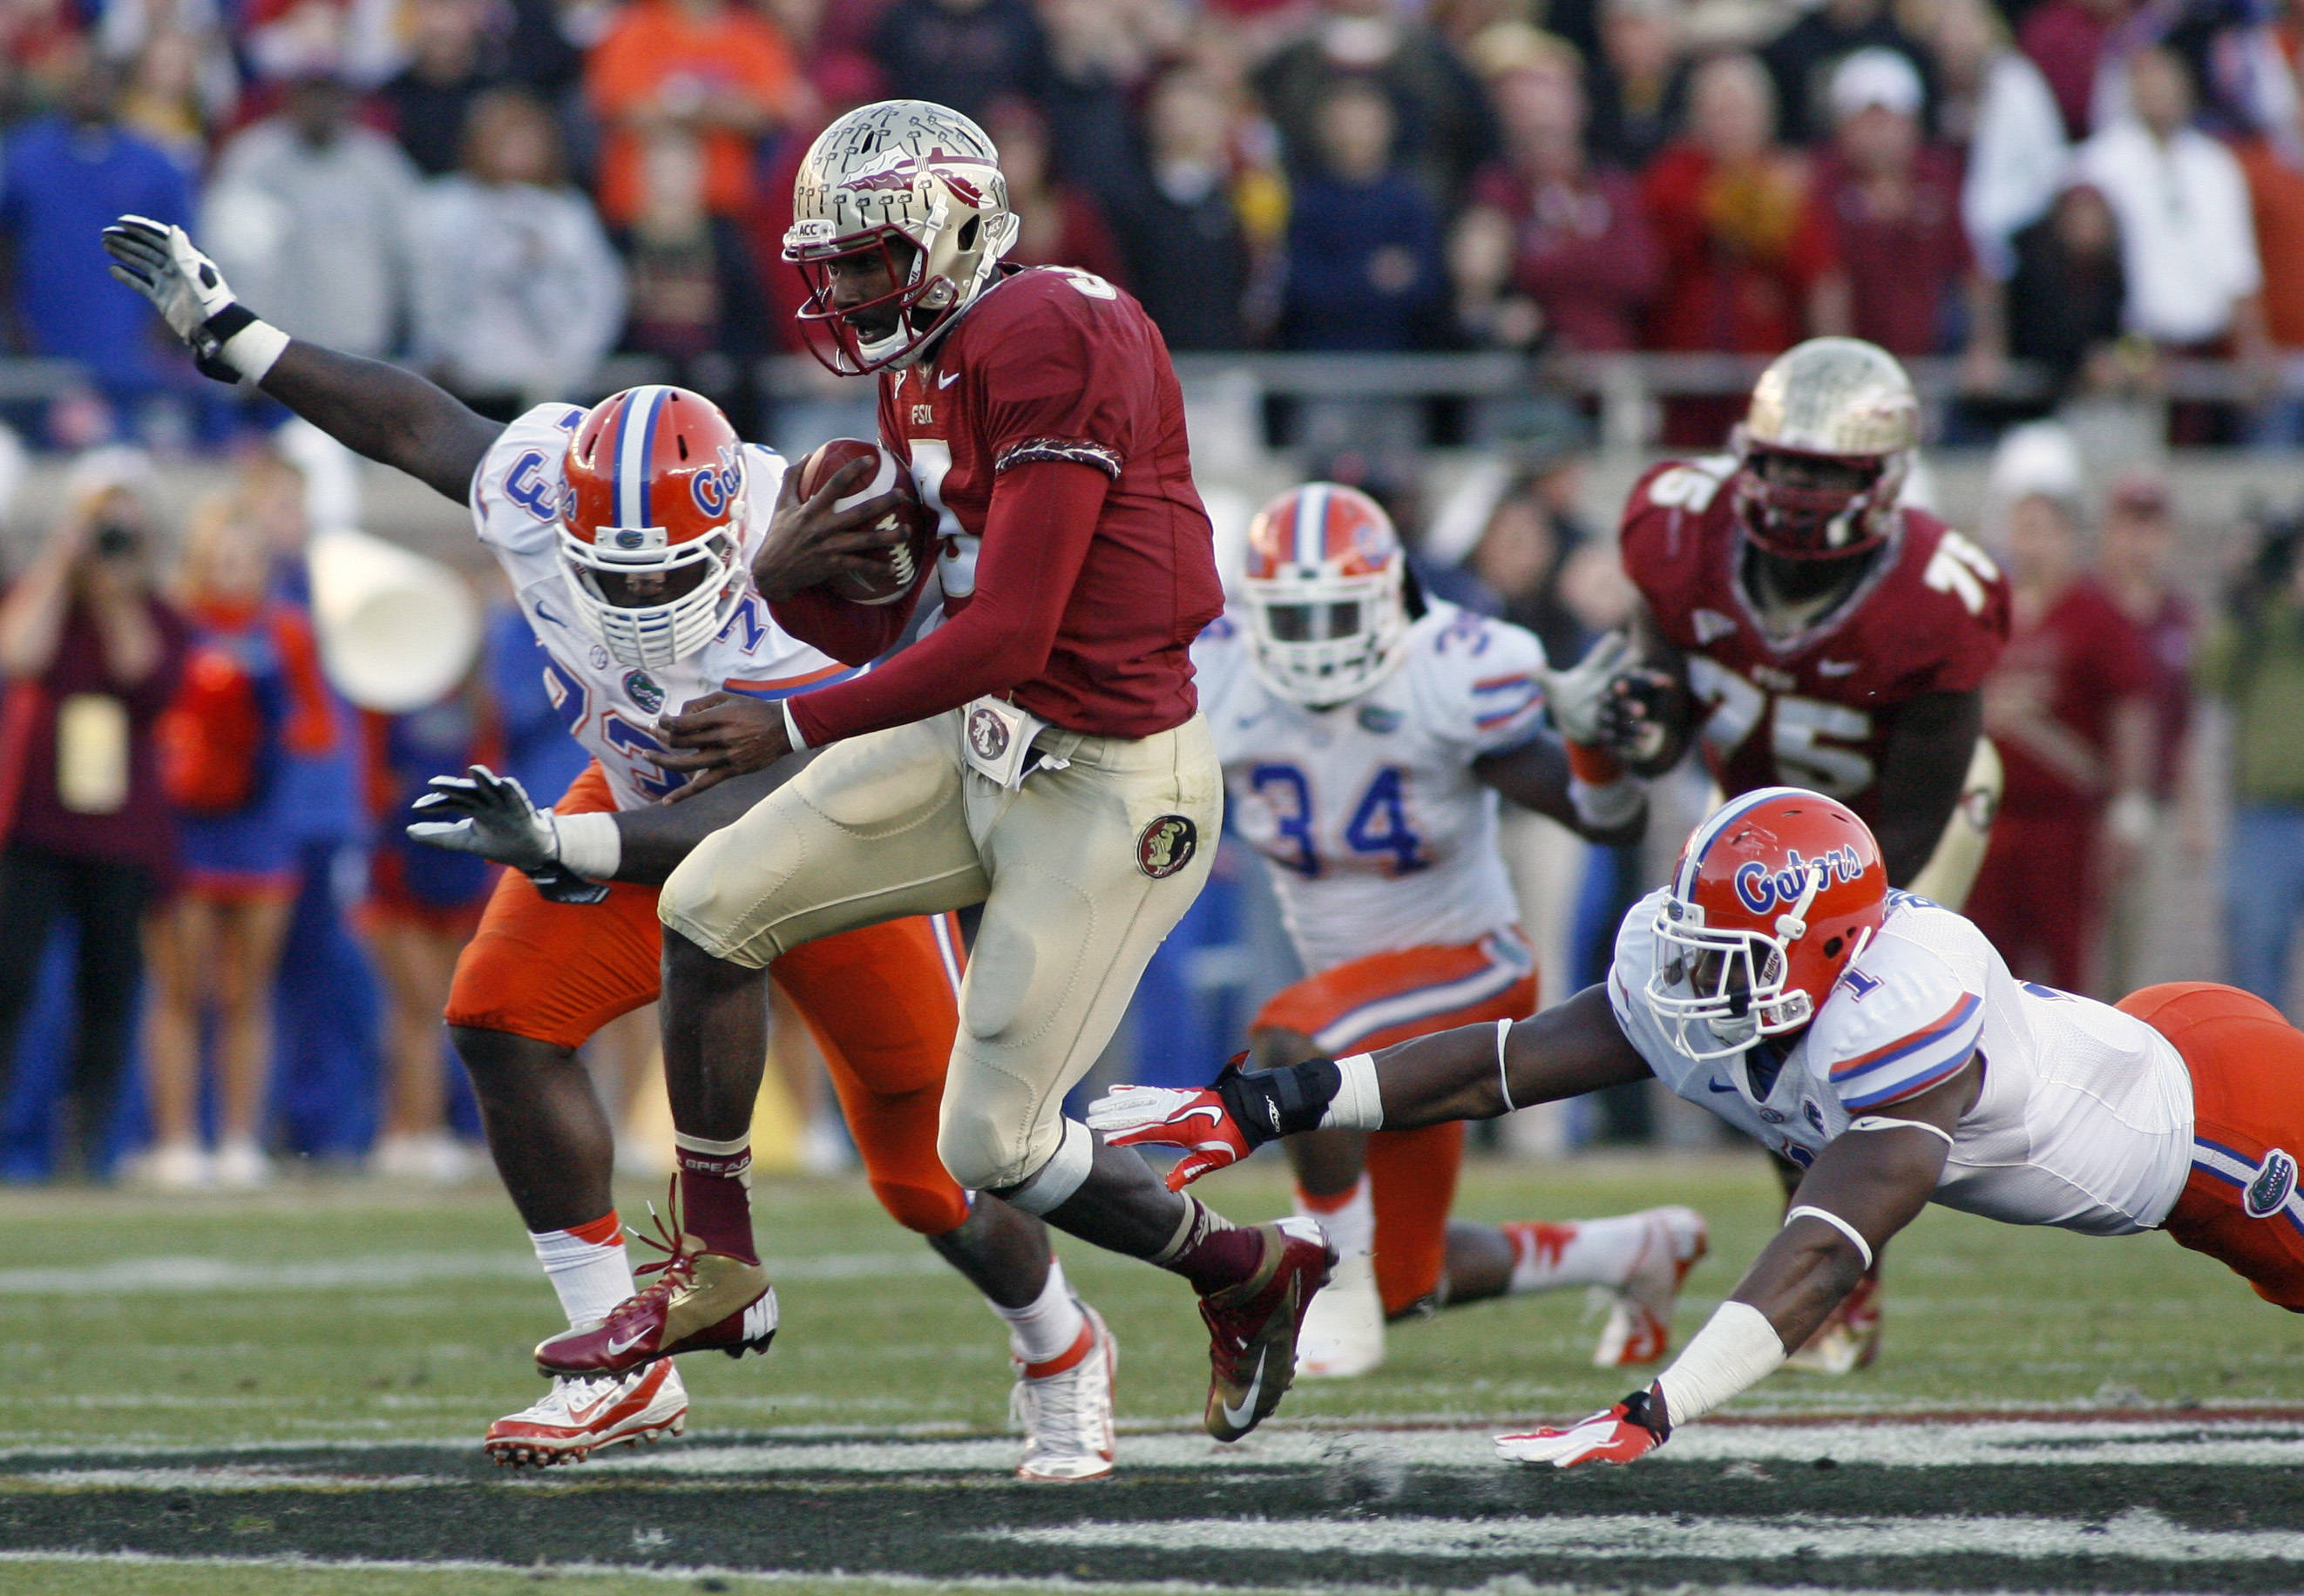 Florida State quarterback EJ Manuel, front center, slips past Florida defensive lineman Sharrif Floyd (73) and linebacker Jon Bostic (1) for a 23-yard run. (AP Photo/Phil Sears)